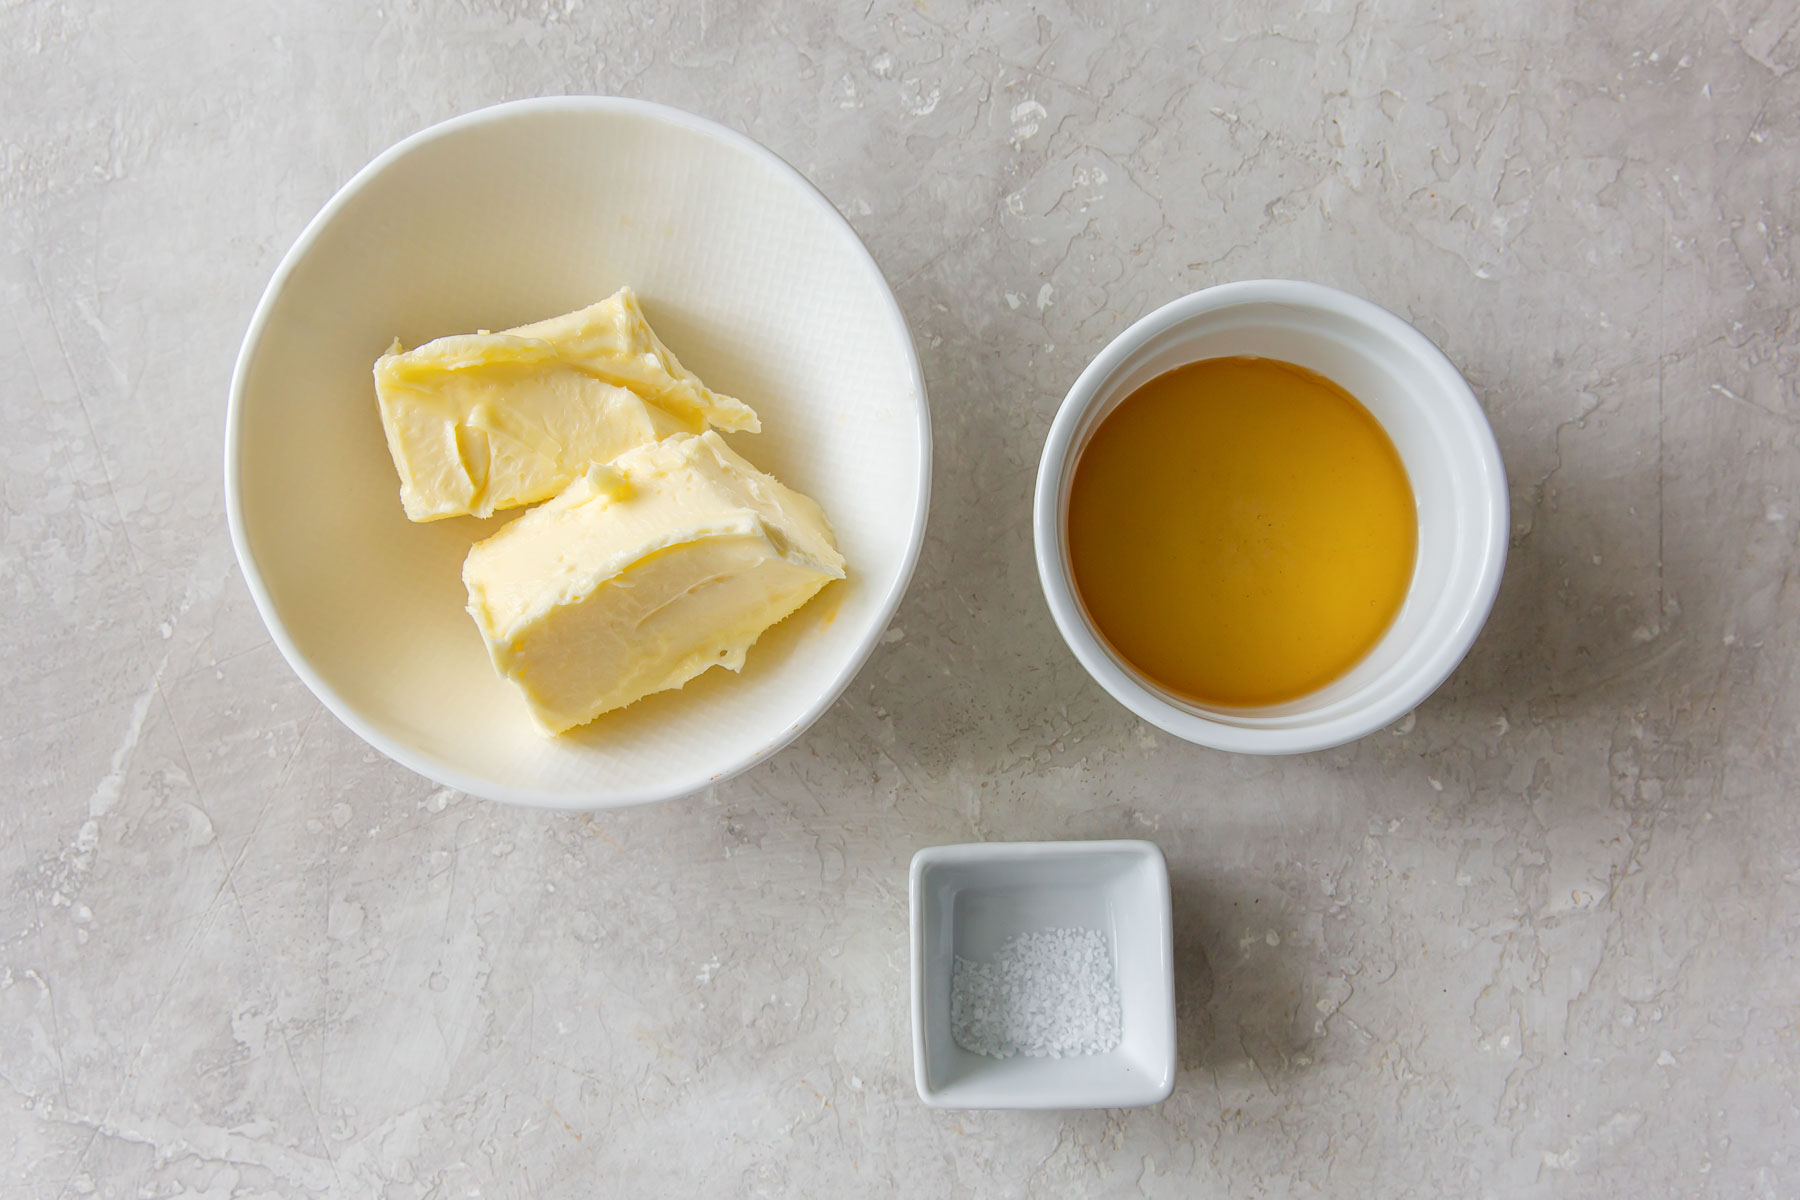 ingredients for honey butter recipe